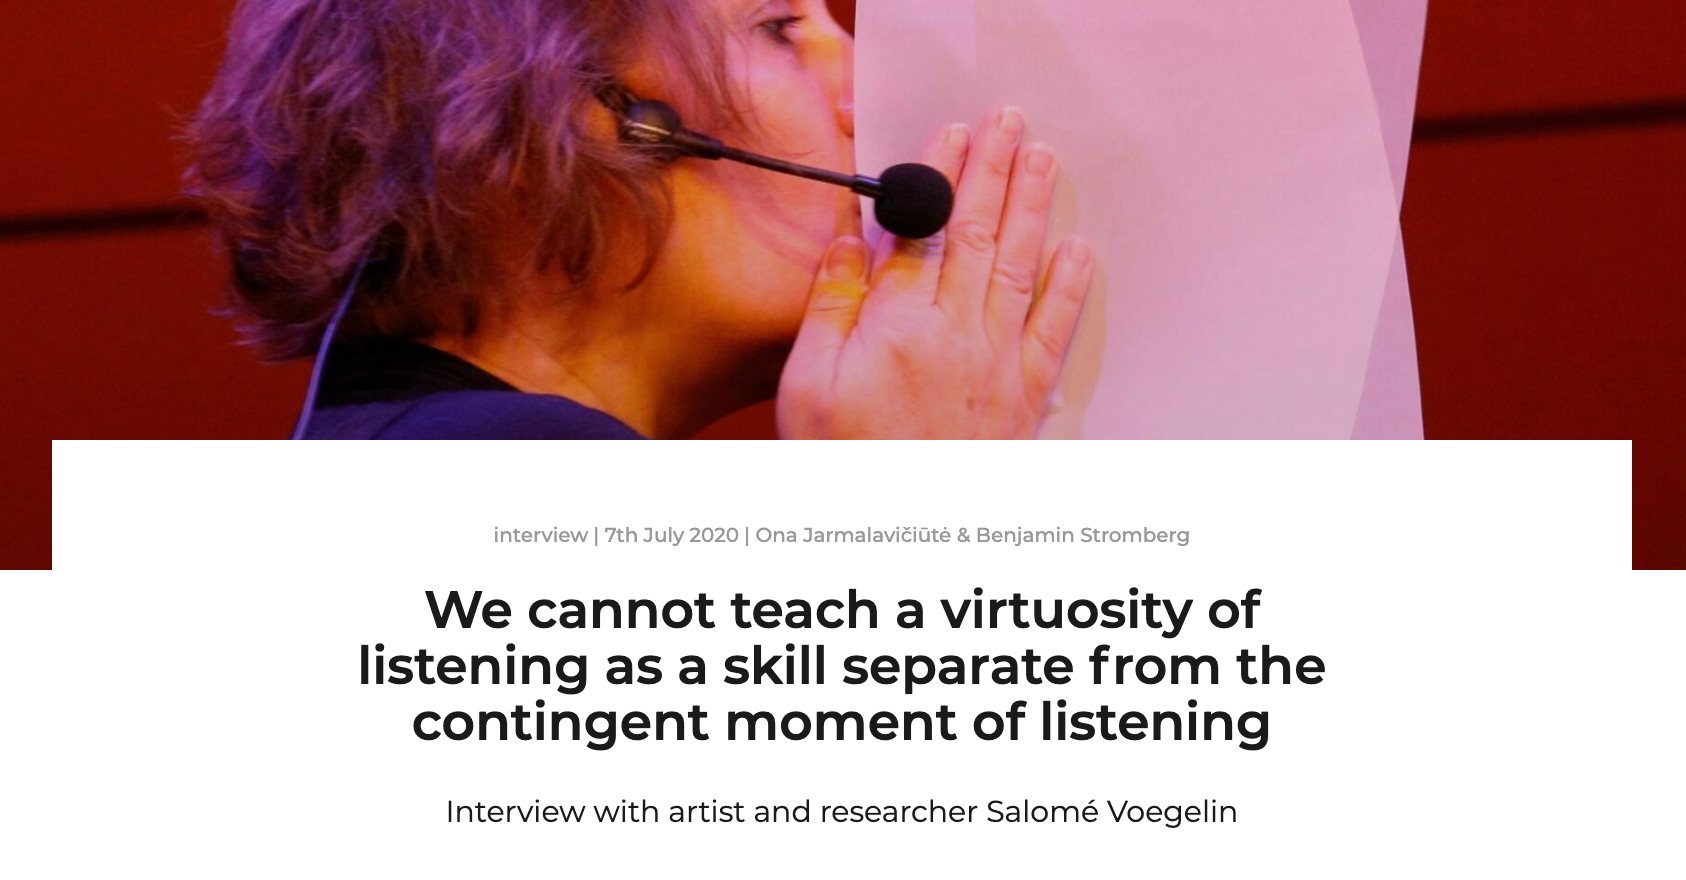 We cannot teach a virtuosity of listening as a skill separate from the contingent moment of listening